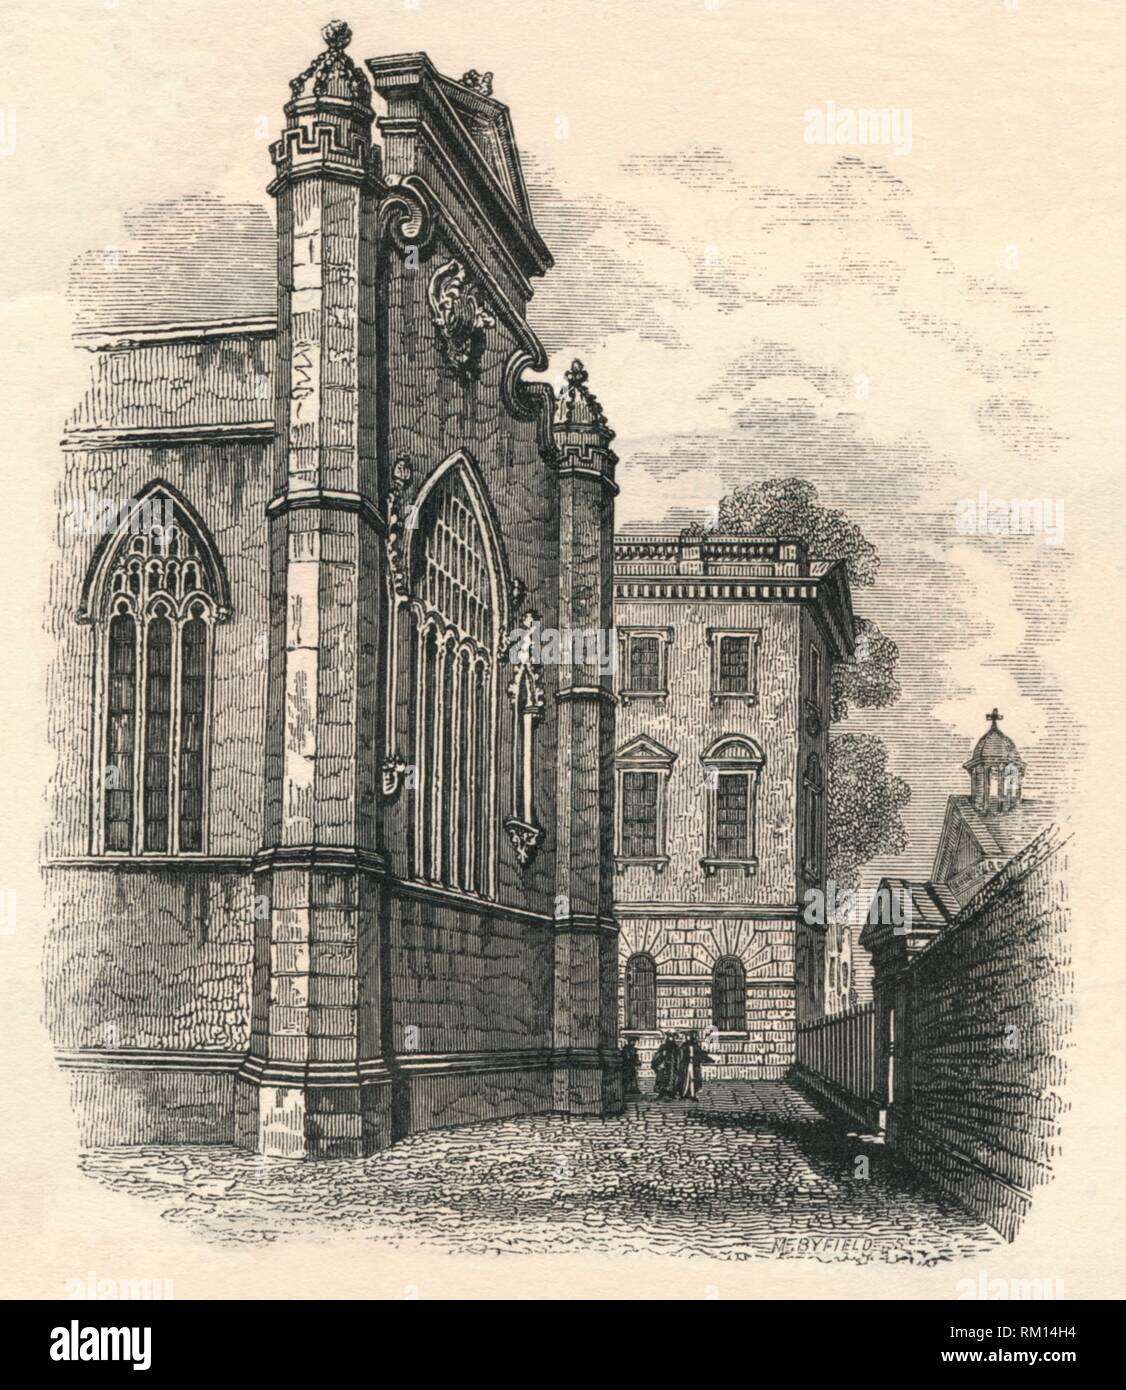 'The East End of the College Chapel', Peterhouse, Cambridge 19th century? The chapel was built in 1628. - Stock Image